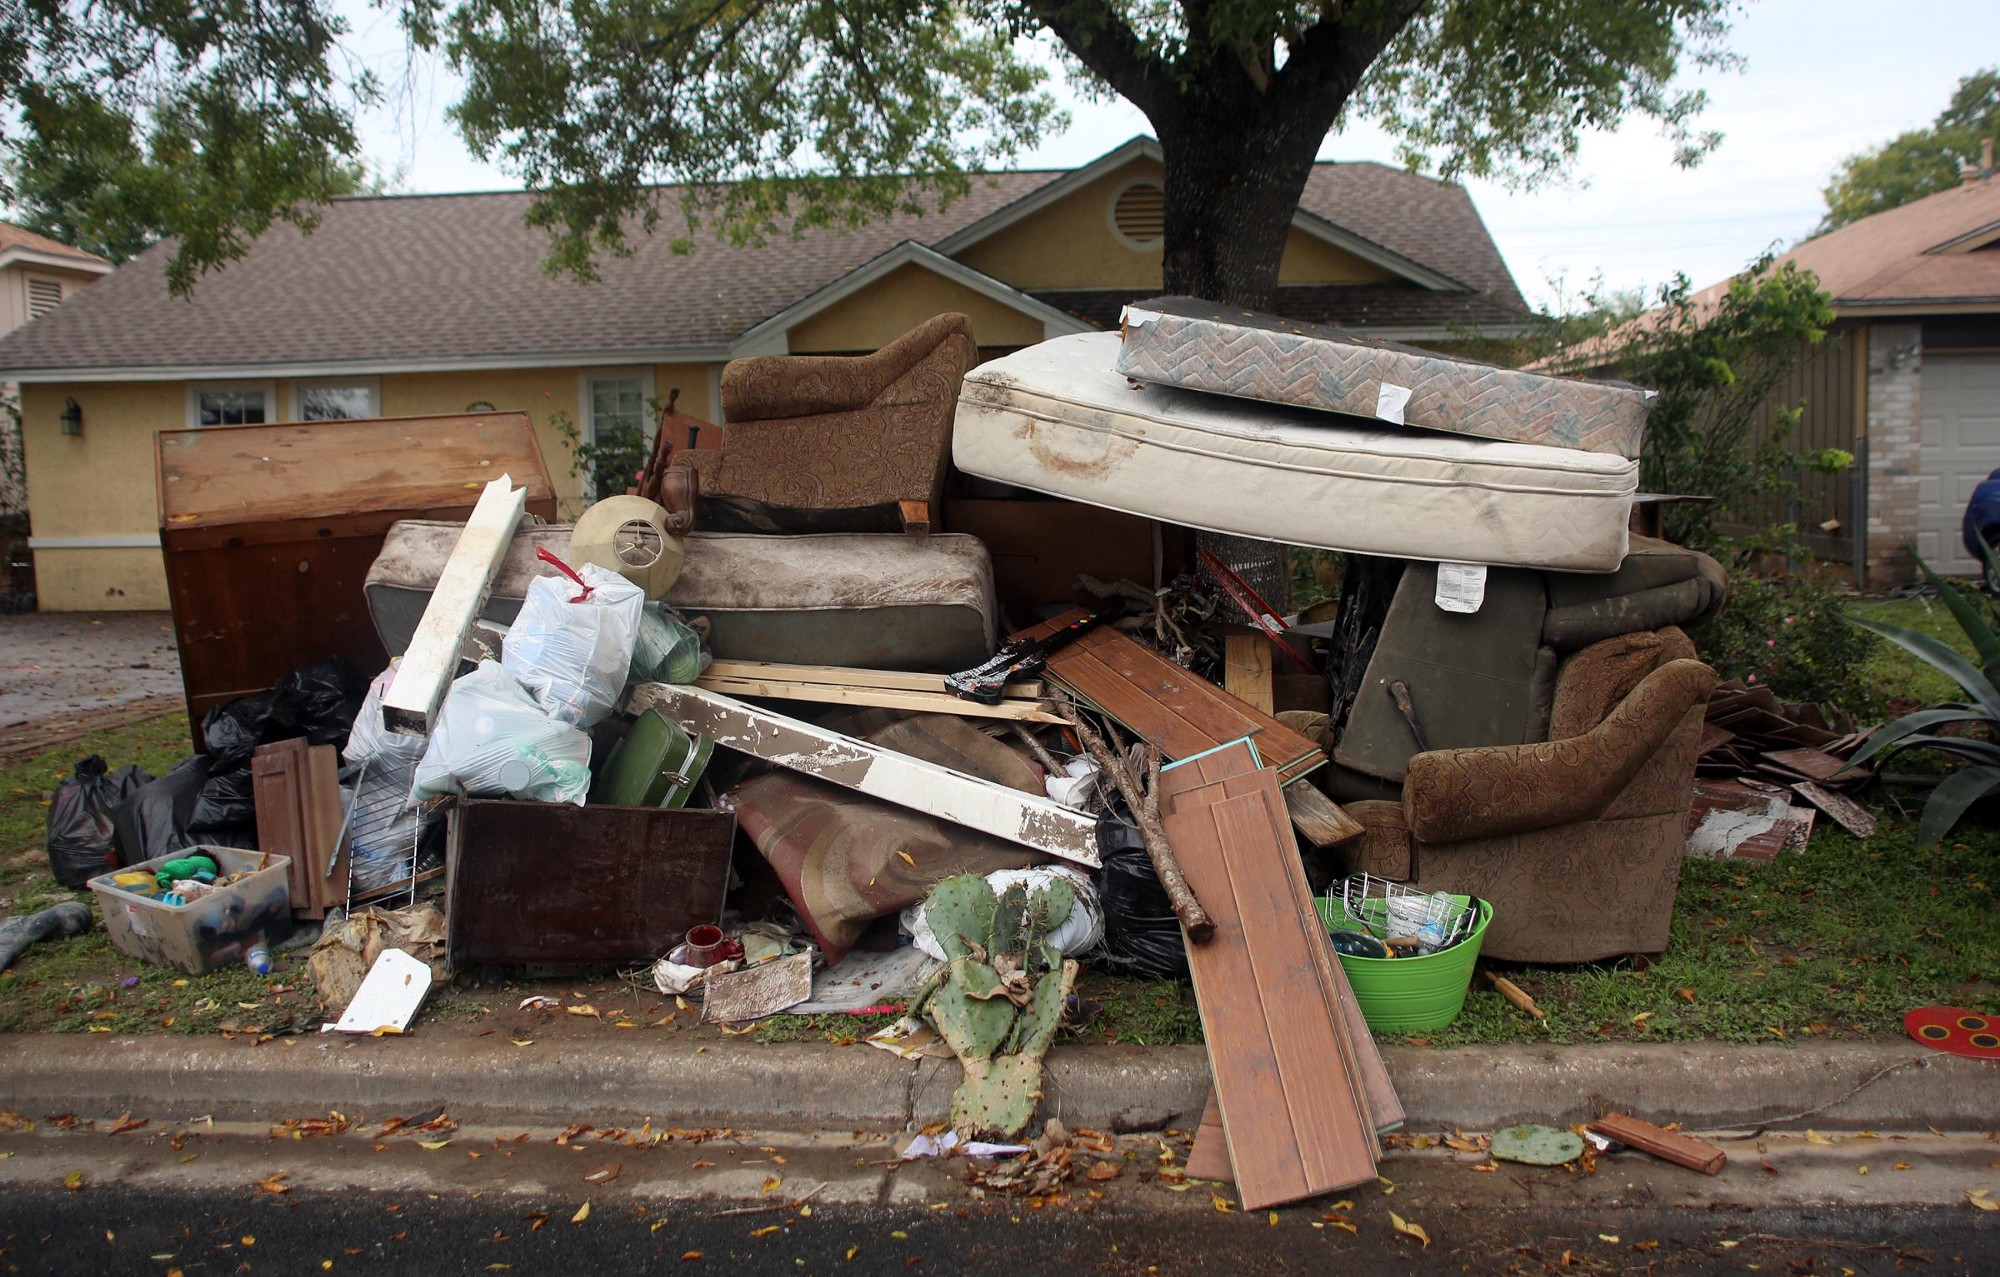 Personal home belongings, destroyed by flood waters, line residential streets during clean up.